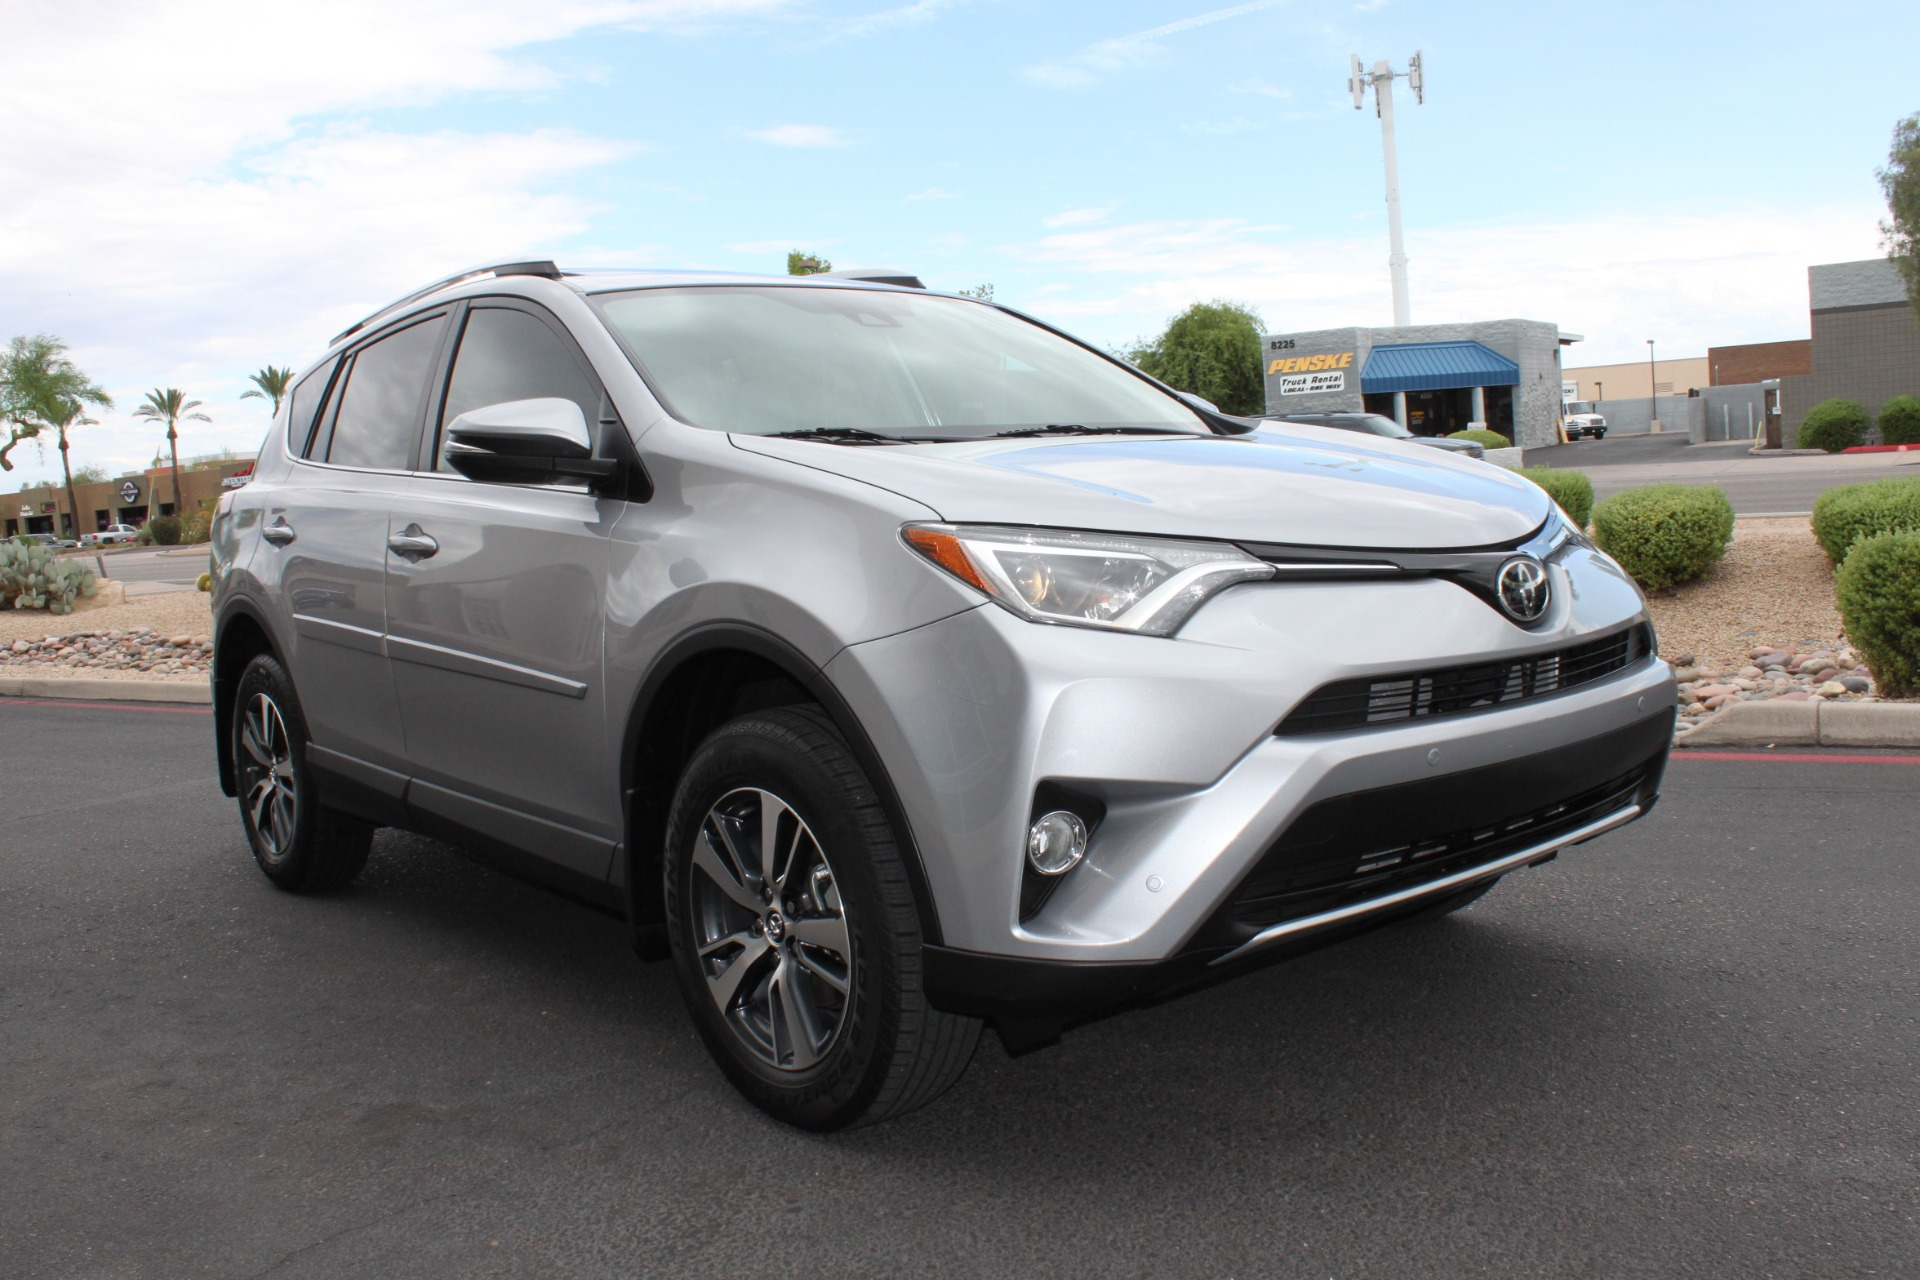 Used-2016-Toyota-RAV4-XLE-Mercedes-Benz